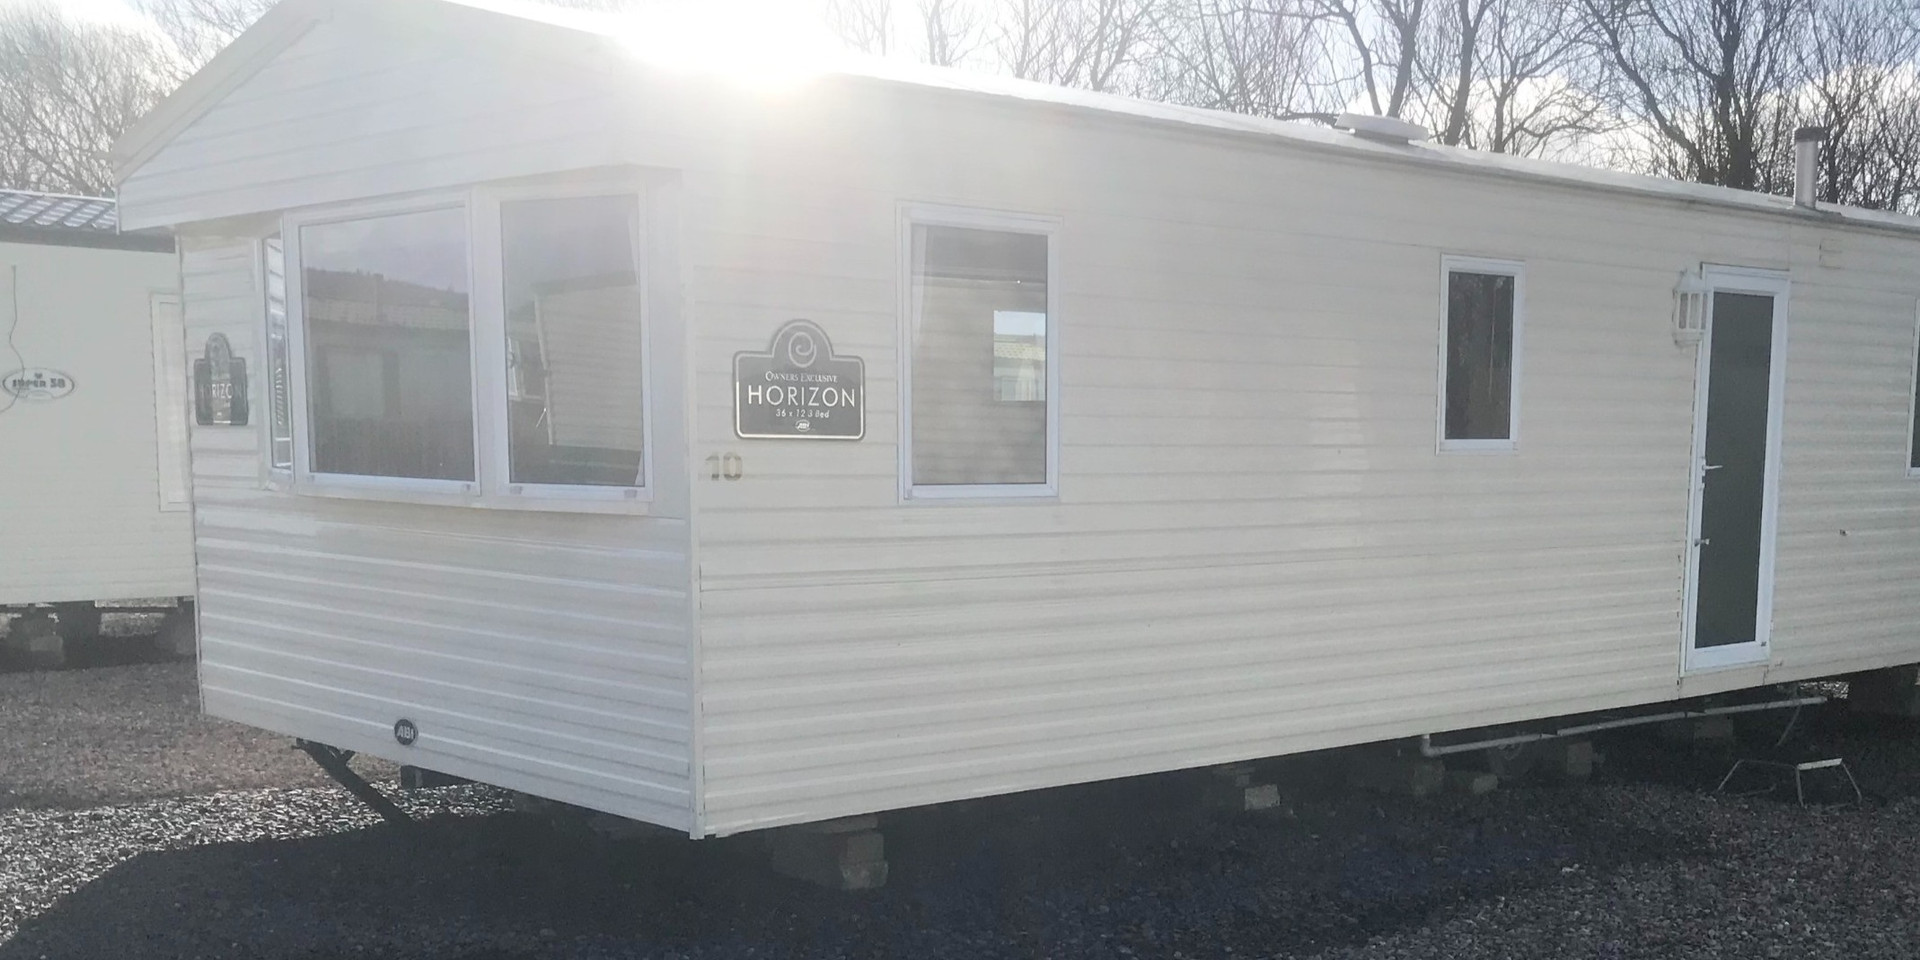 caravans%252520for%252520sale%252520scot